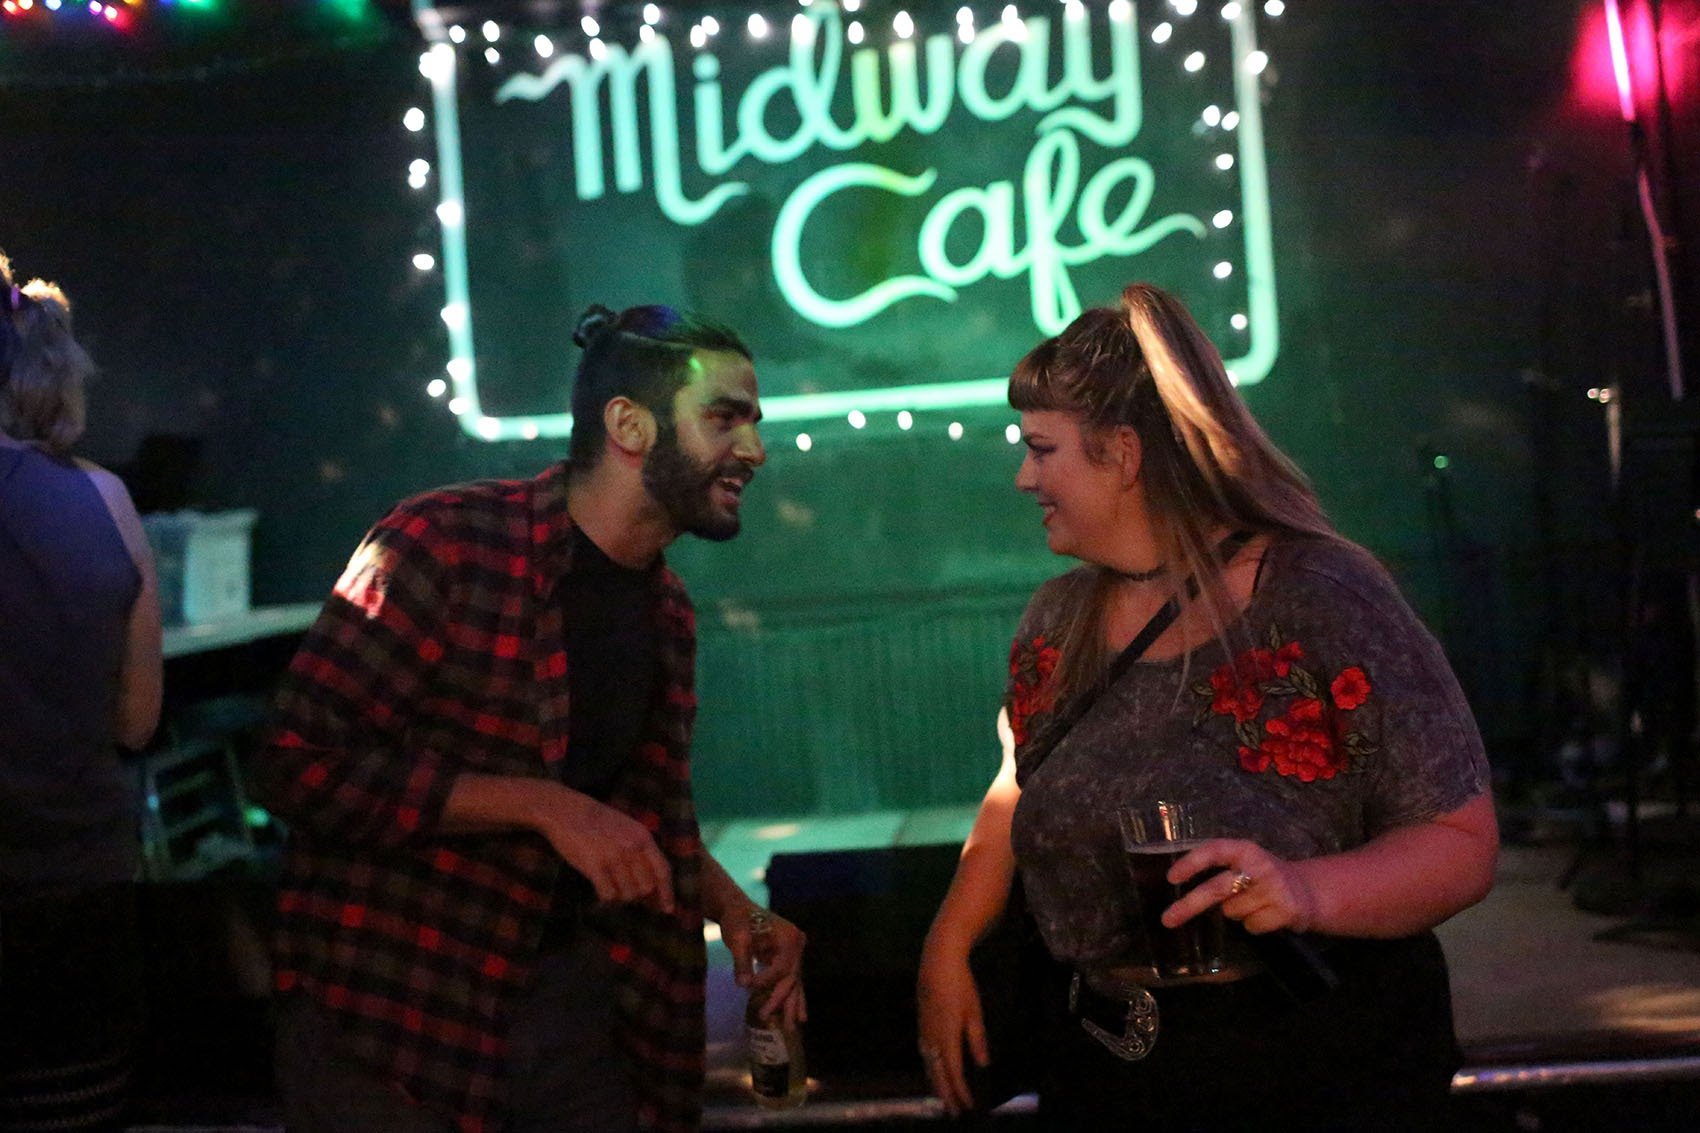 Kristie Macewen and Anthony Fusco dance at Midway Cafe. (Hadley Green for WBUR)